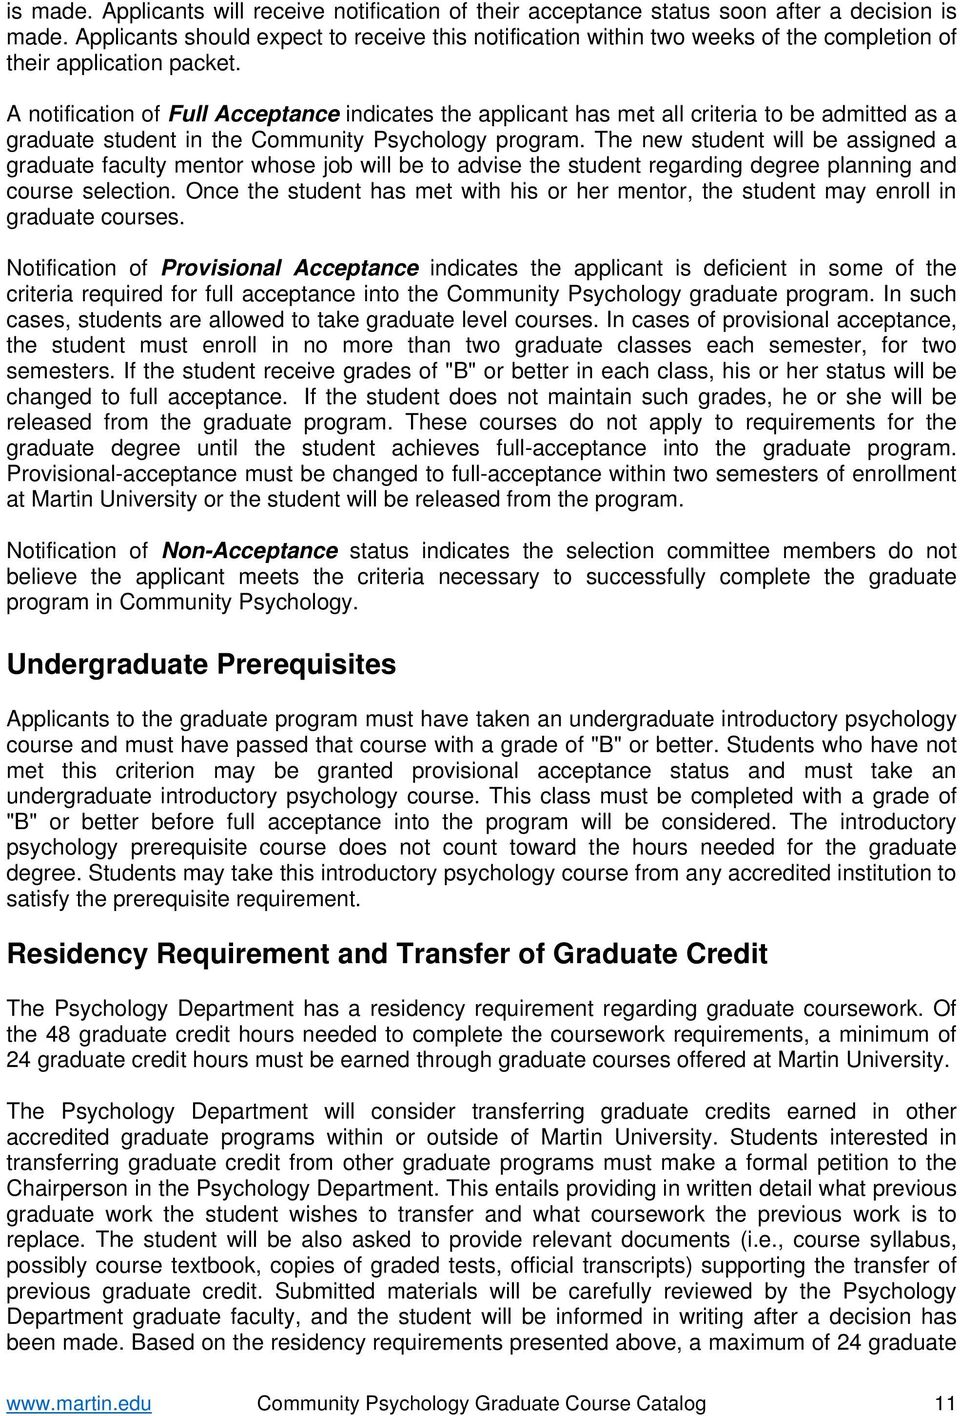 A notification of Full Acceptance indicates the applicant has met all criteria to be admitted as a graduate student in the Community Psychology program.